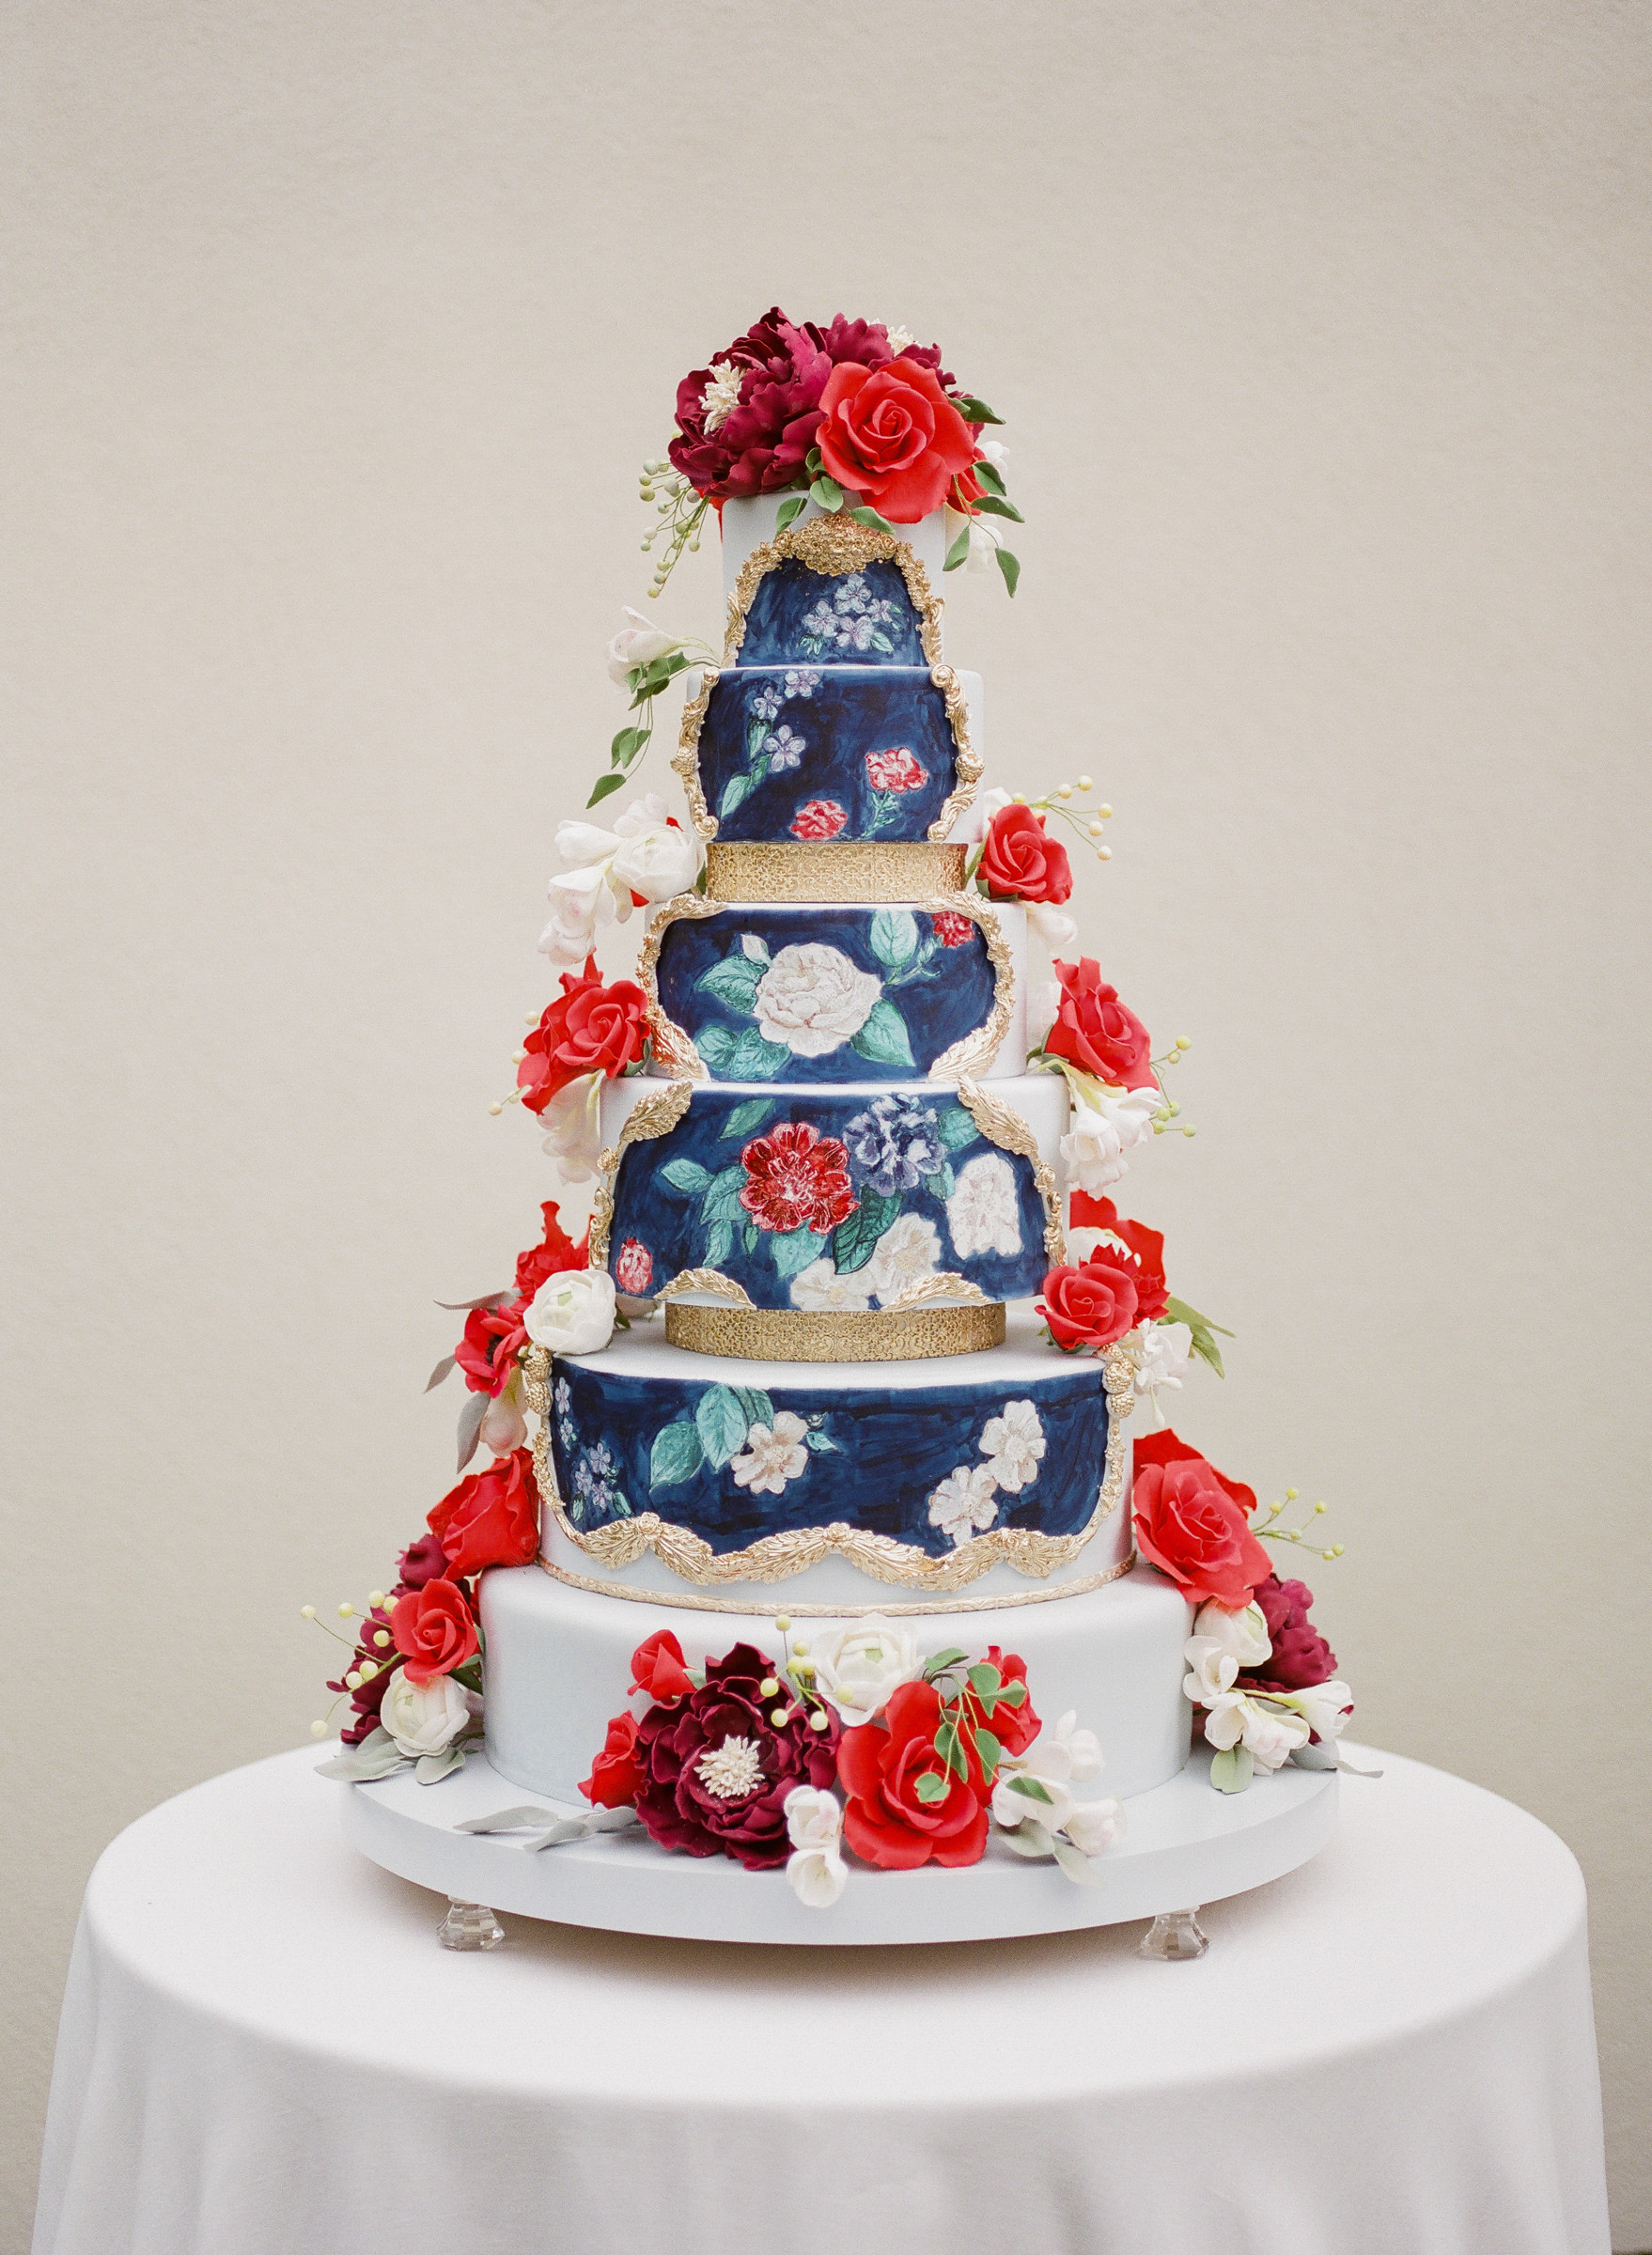 Six tiered painted wedding cake with red roses - photo by Corbin Gurkin